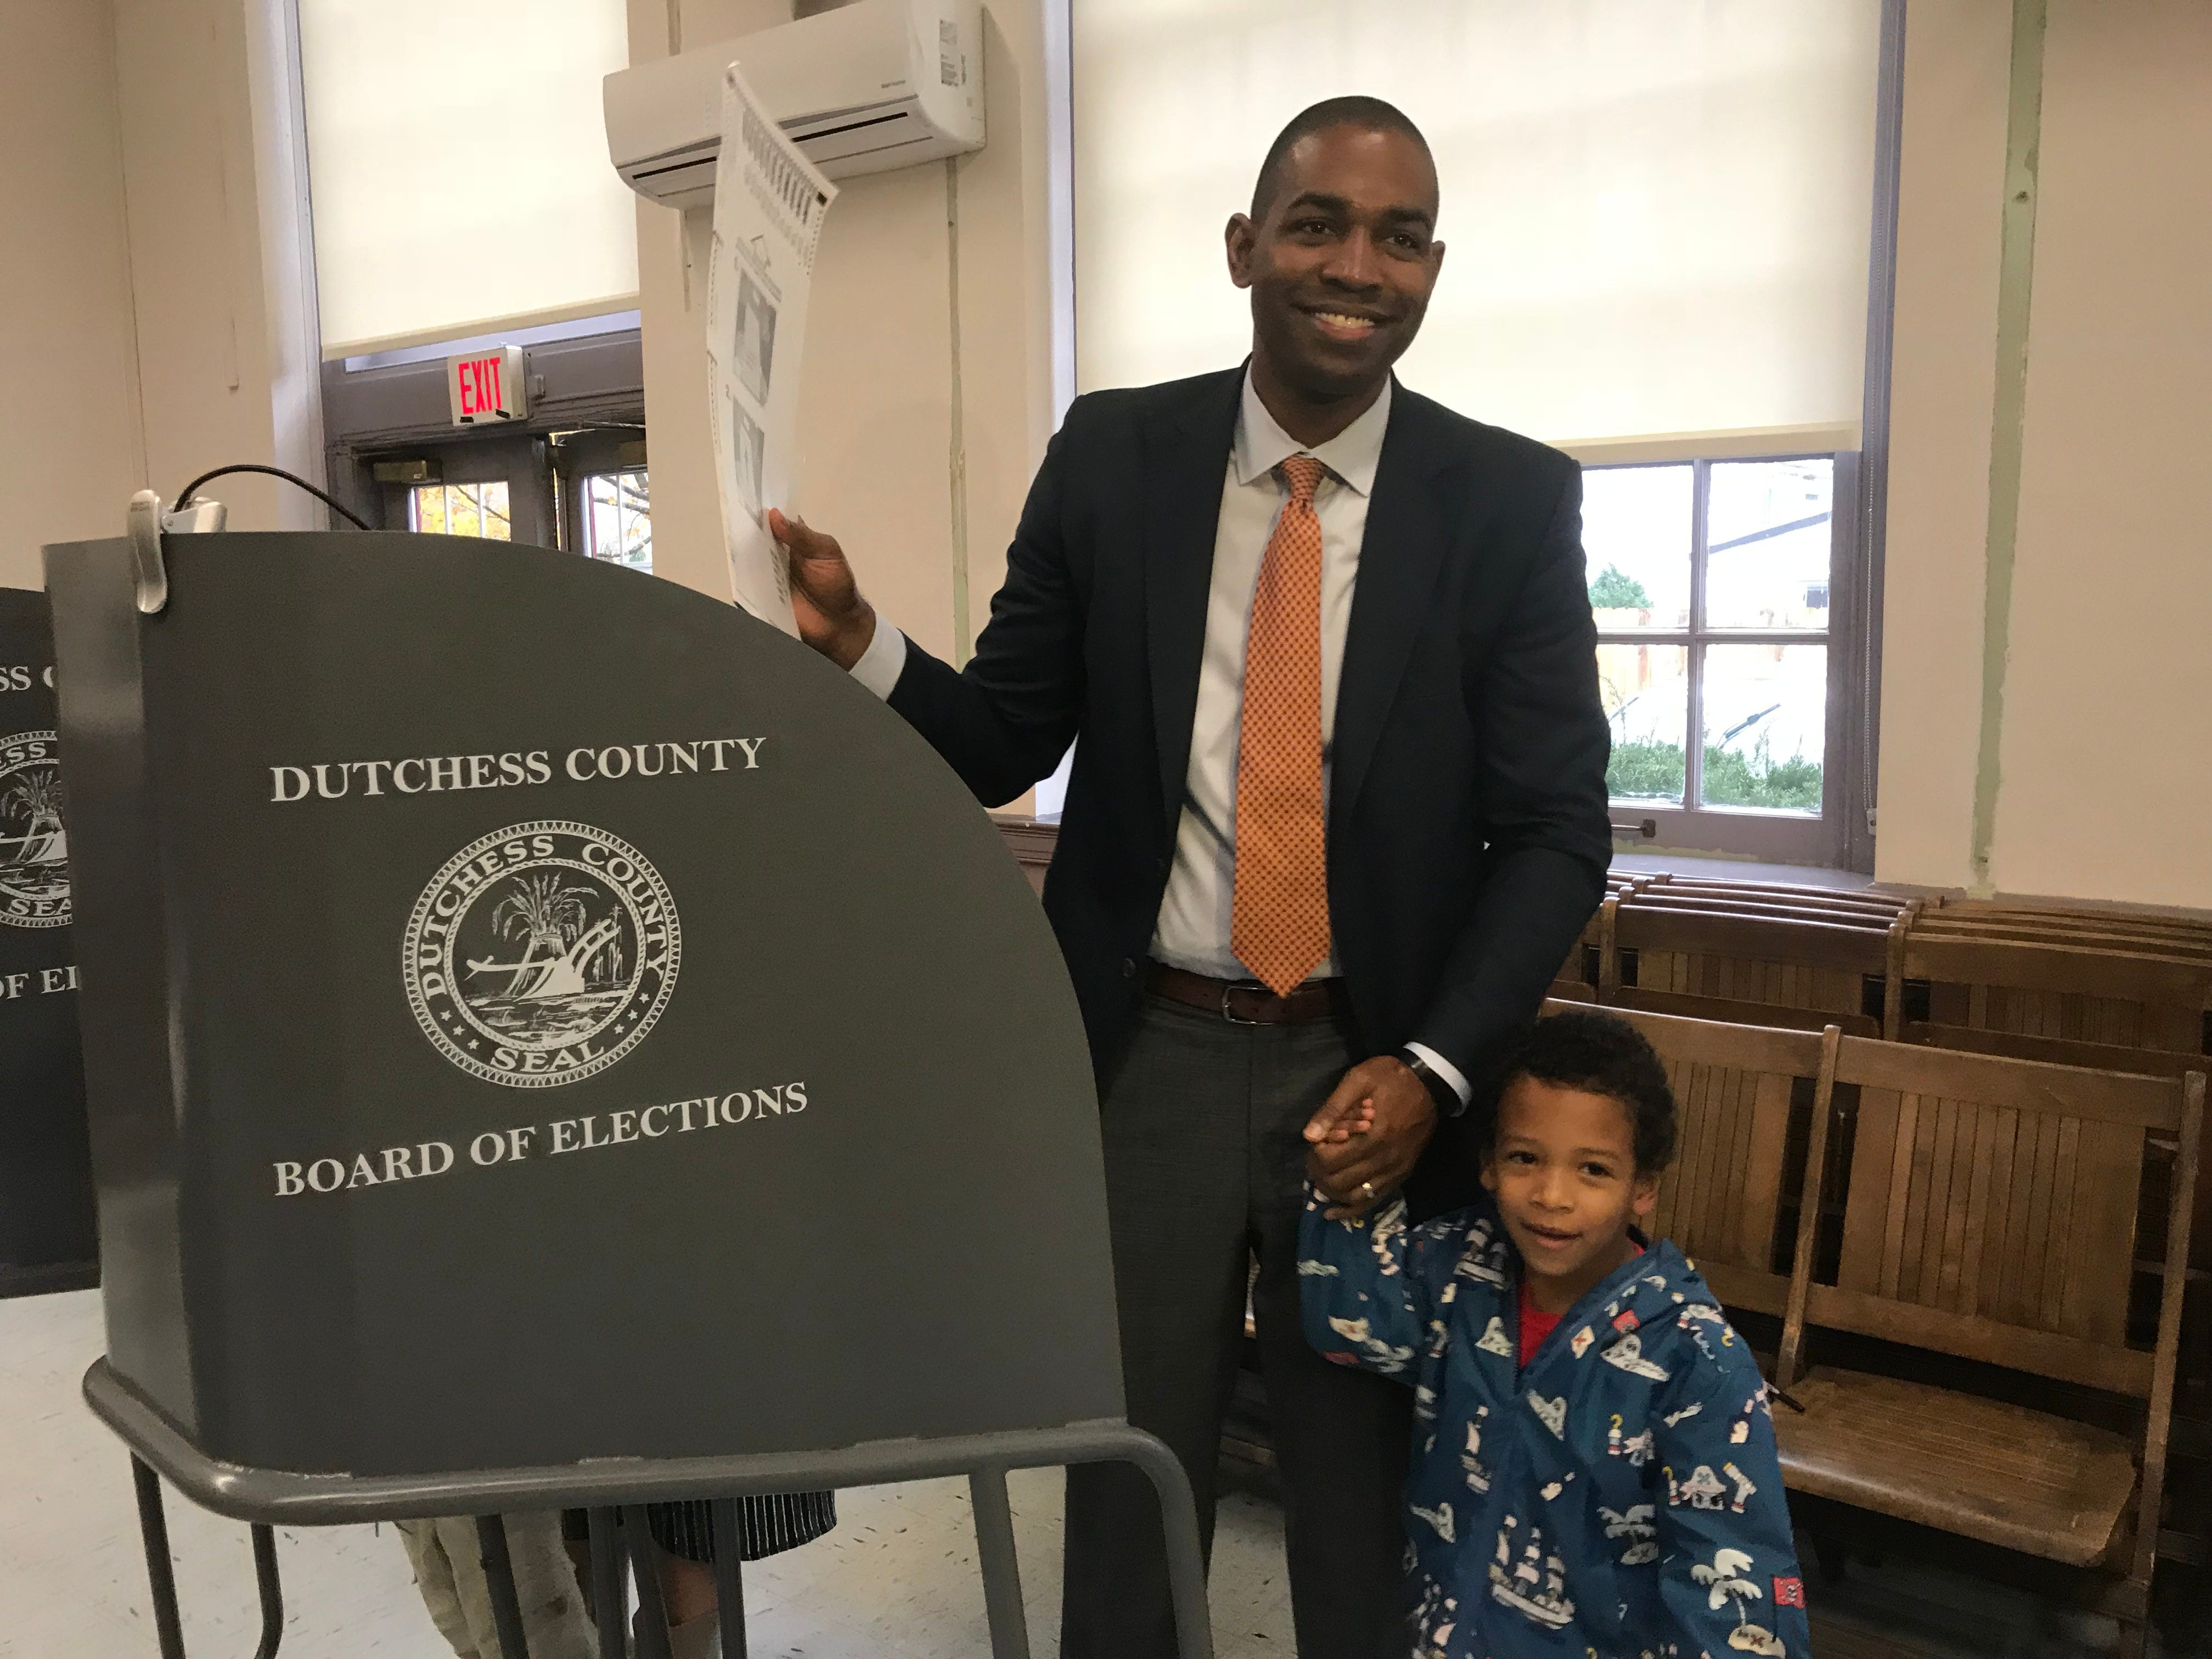 Antonio Delgado of Rhinebeck, Democratic candidate for the 19th Congressional District, votes at Rhinebeck Town Hall Tuesday morning with his 5-year-old son.